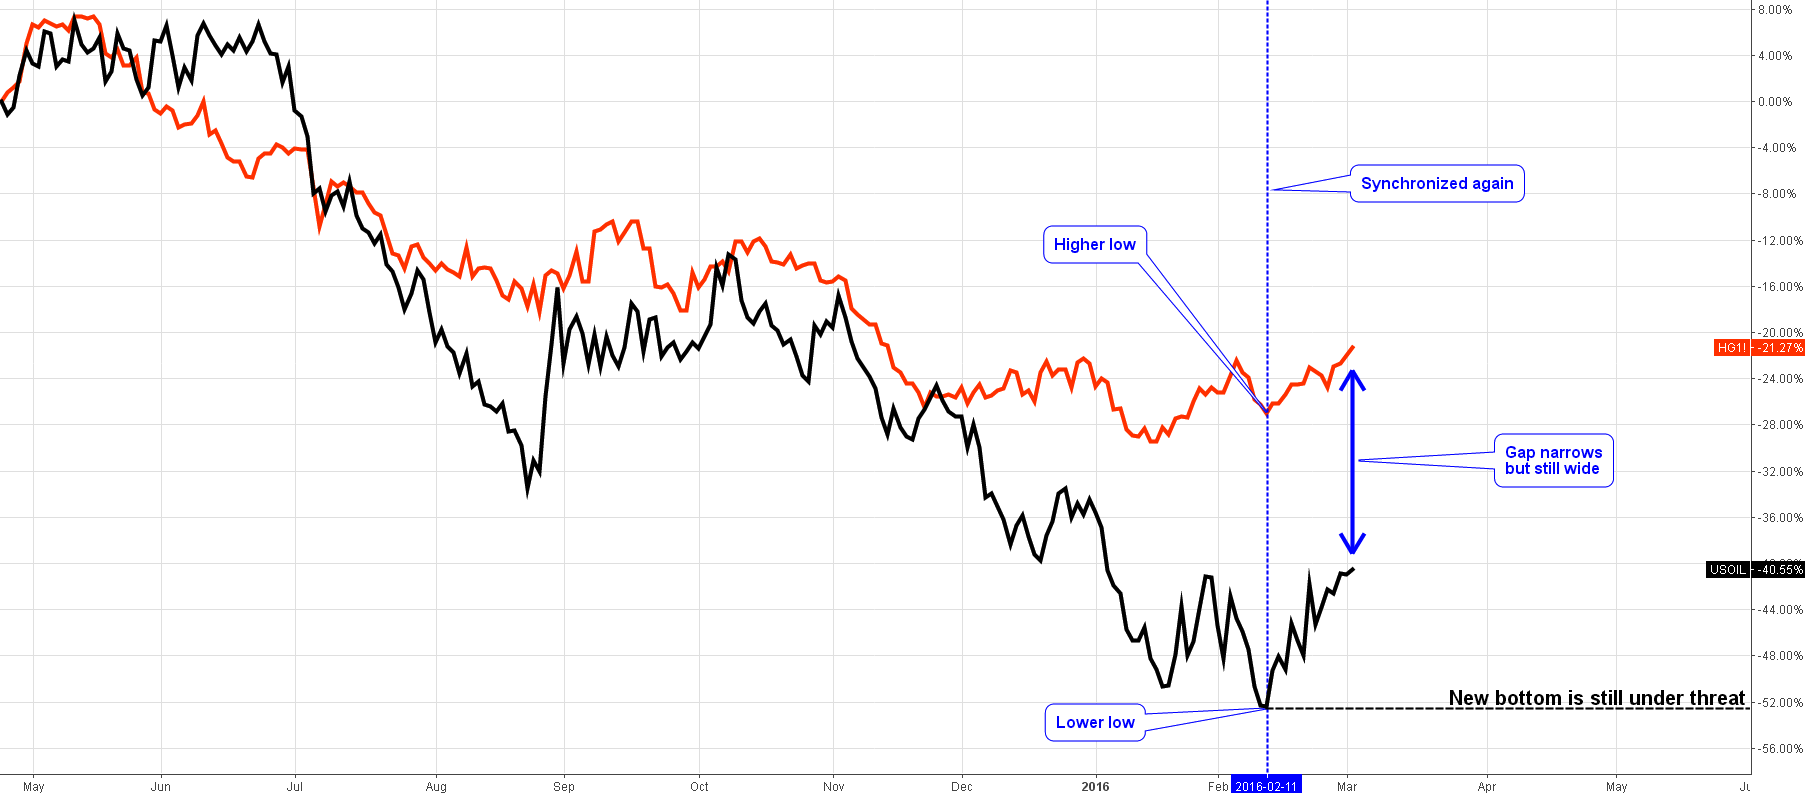 Daily Chart of the Copper-Crude Oil Correlation